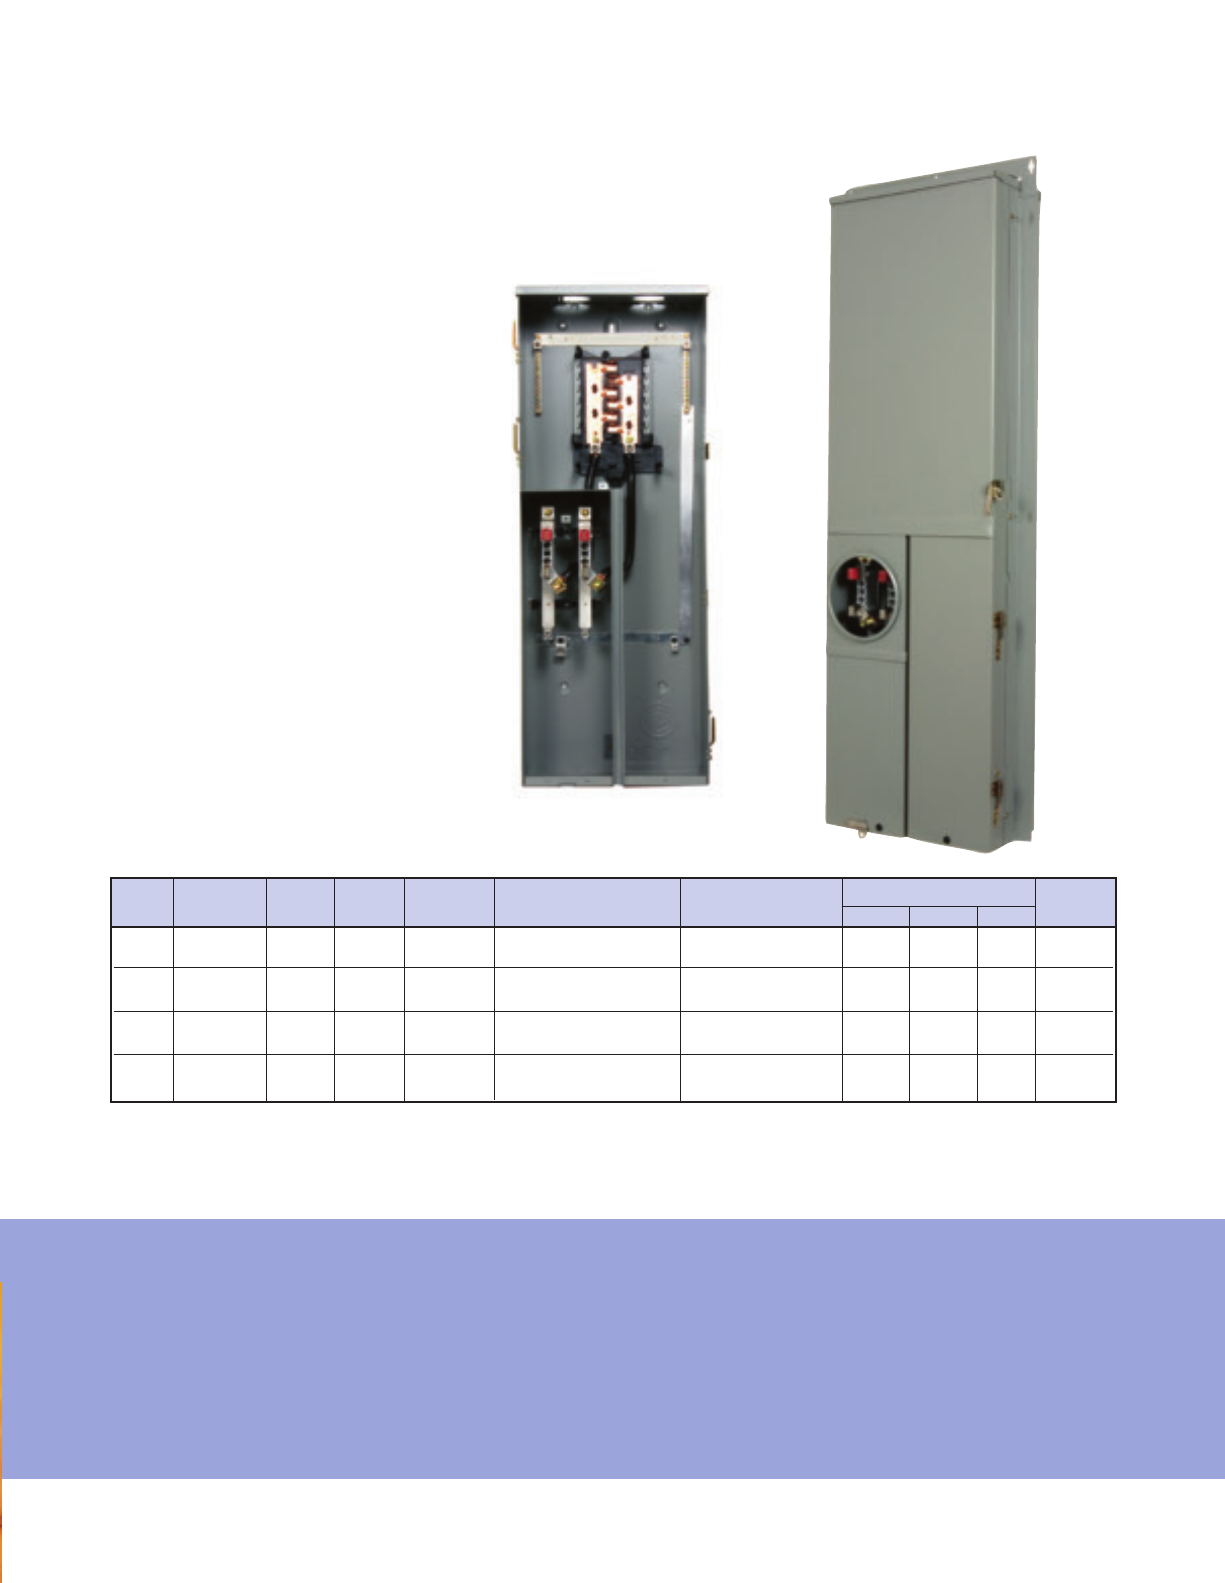 Brochure About Siemens Murray Mp3030 30 Amp Single Pole Circuit Breaker 2 Euserc Approved Meter Main And